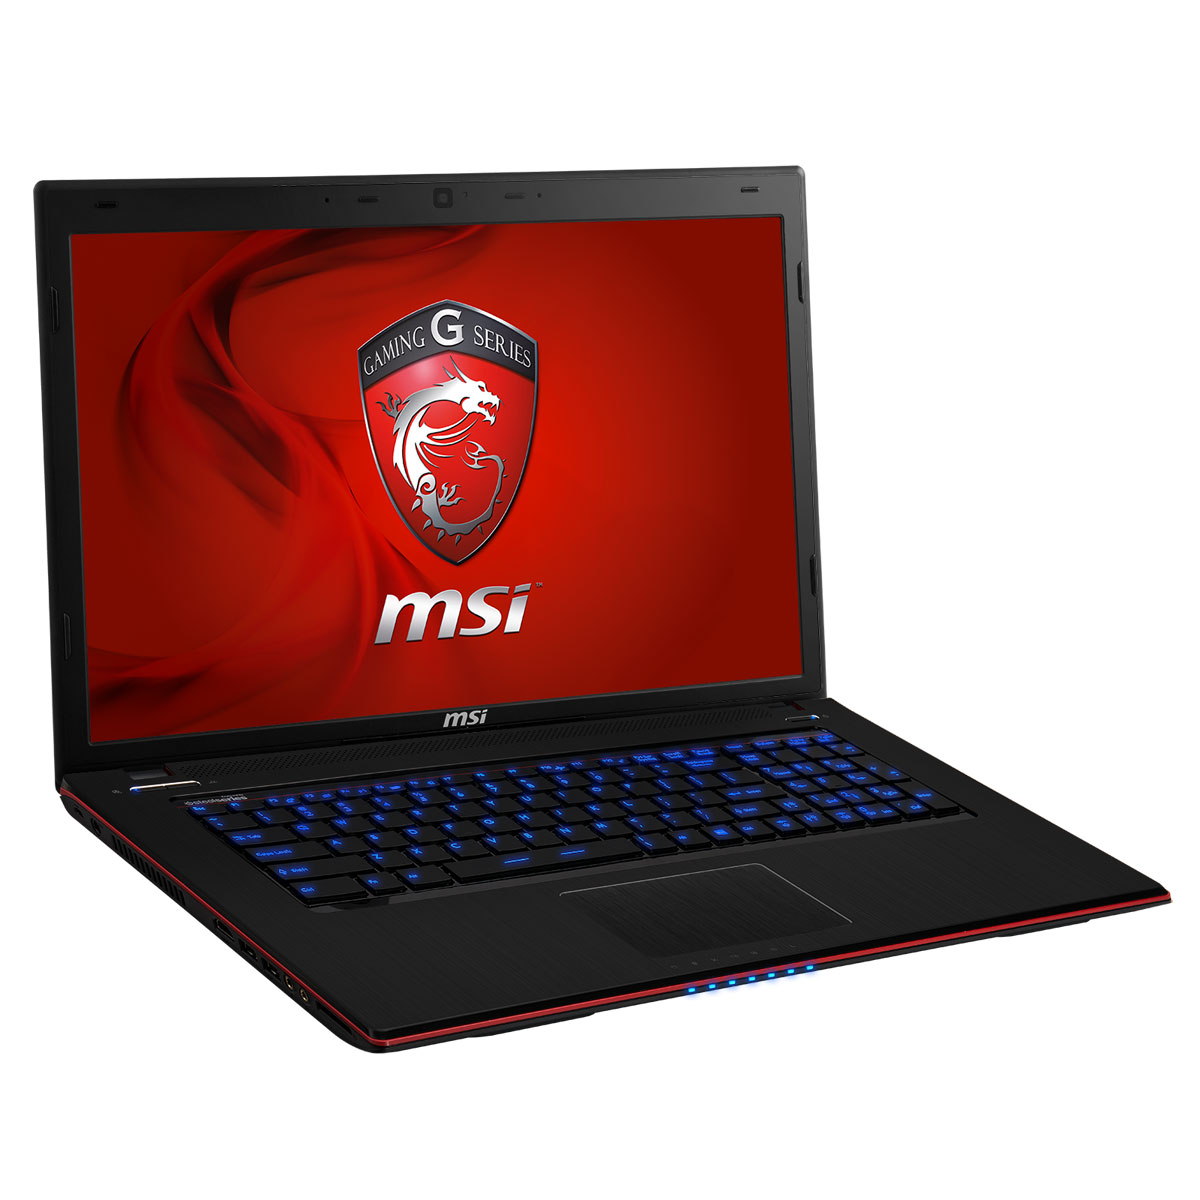 "PC portable MSI GE70 2OE-076FR Intel Core i5-4200M 4 Go 750 Go 17.3"" LED NVIDIA GeForce GTX 765M Graveur DVD Wi-Fi N/Bluetooth Webcam Windows 8 64 bits (garantie constructeur 2 ans)"